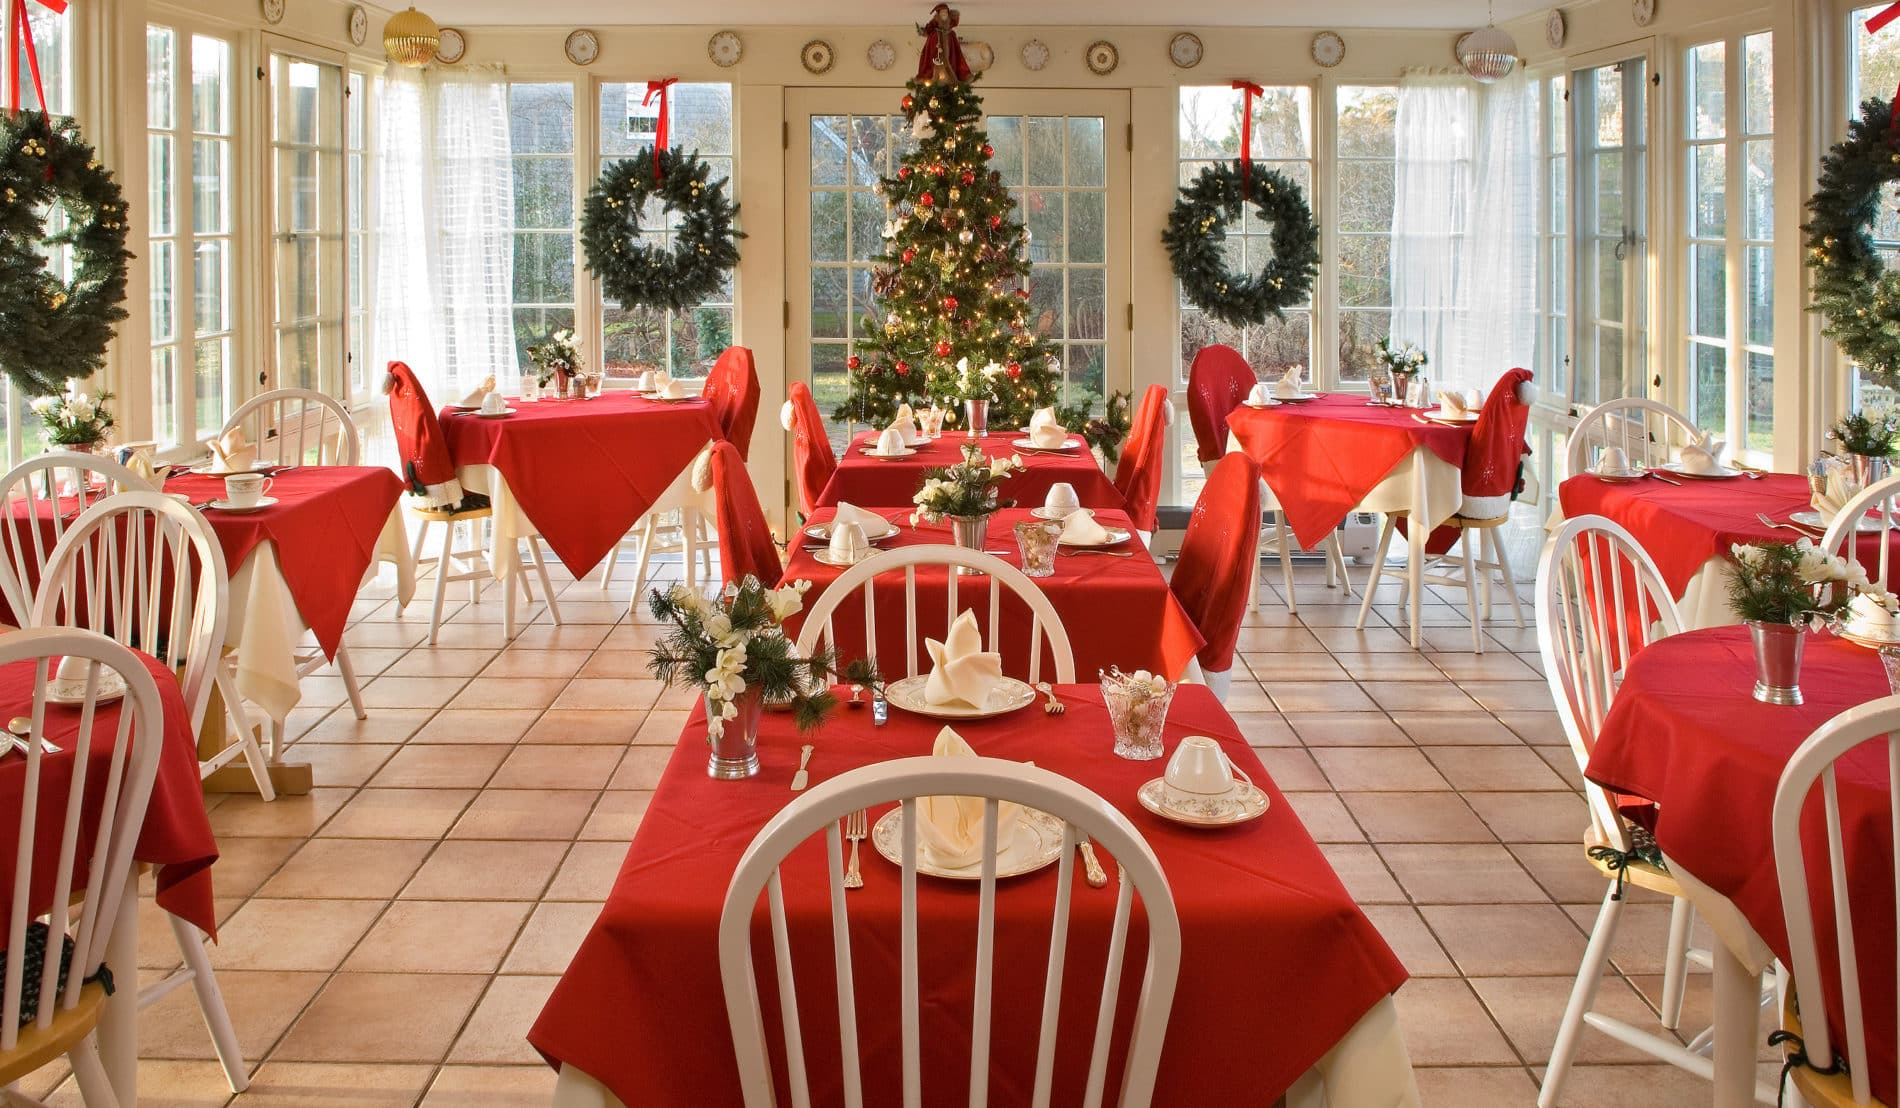 Spacious room surrounded by windows with several white dining tables draped in red cloths set for a meal at Christmas